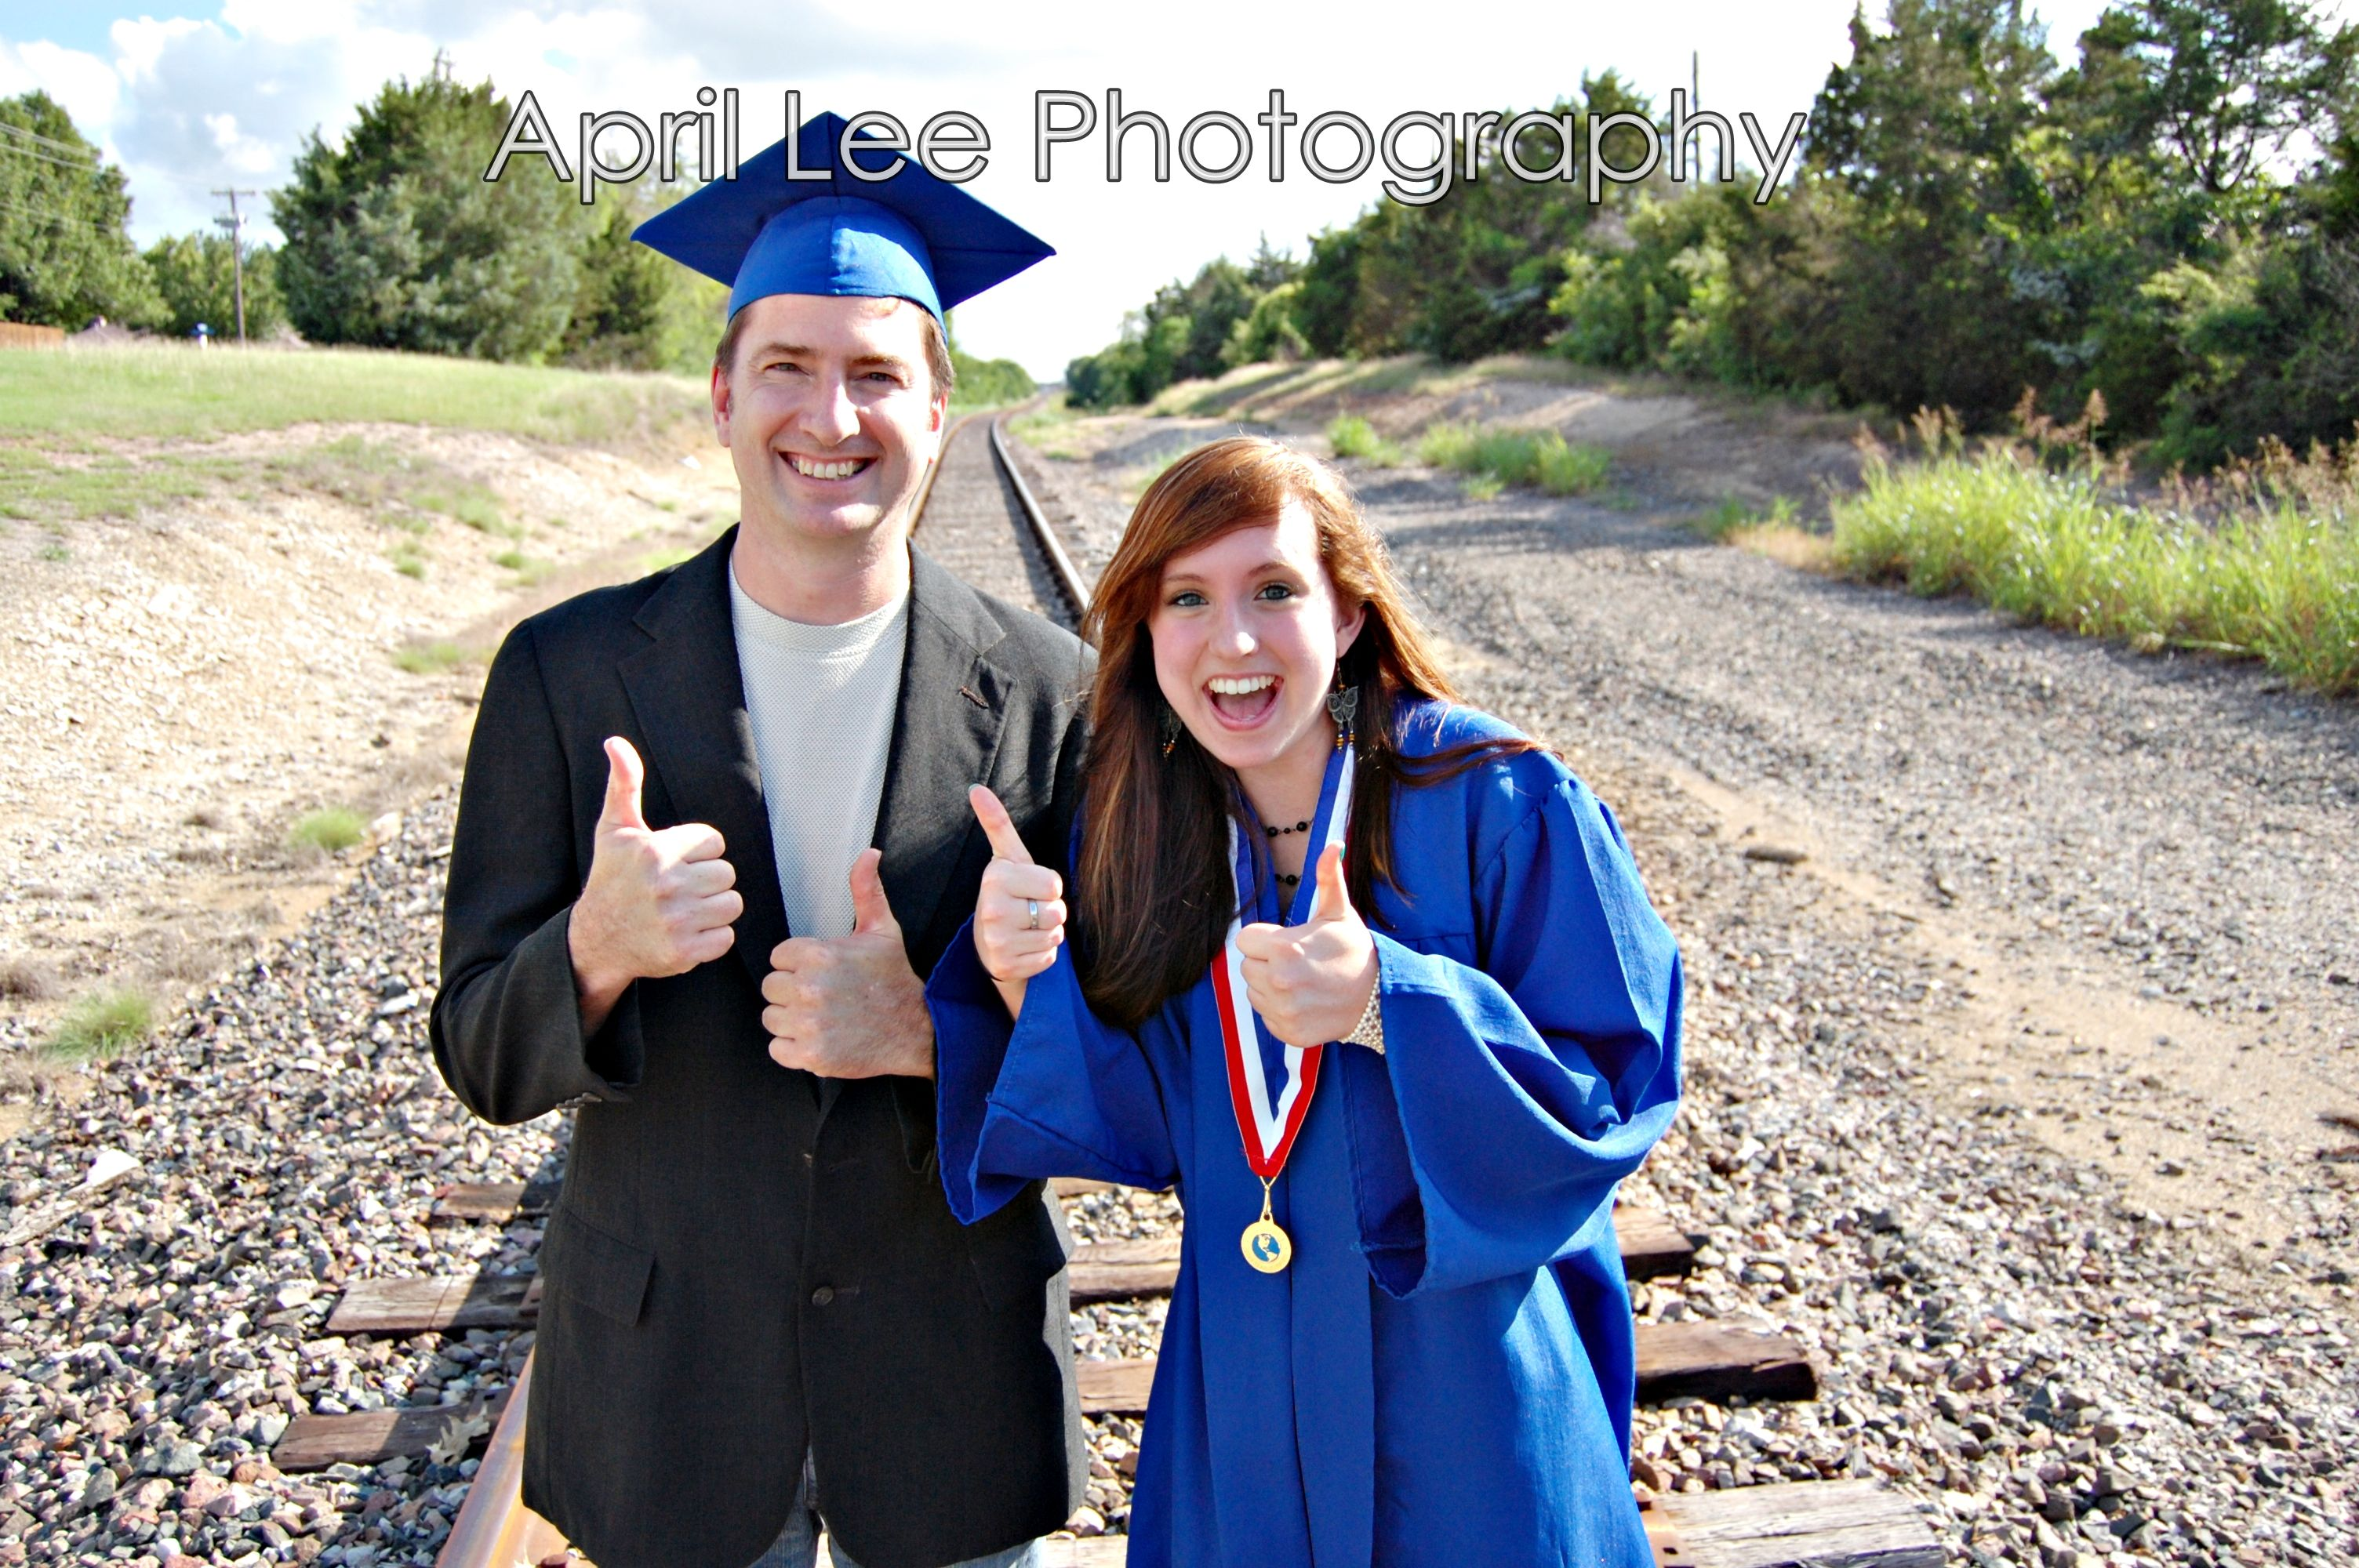 Senior Portrait with Parent April Lee Photography - DFW Photographer  www.Facebook.com/AprilLeePhotography www.AprilLeePhotography.Wordpress.Com